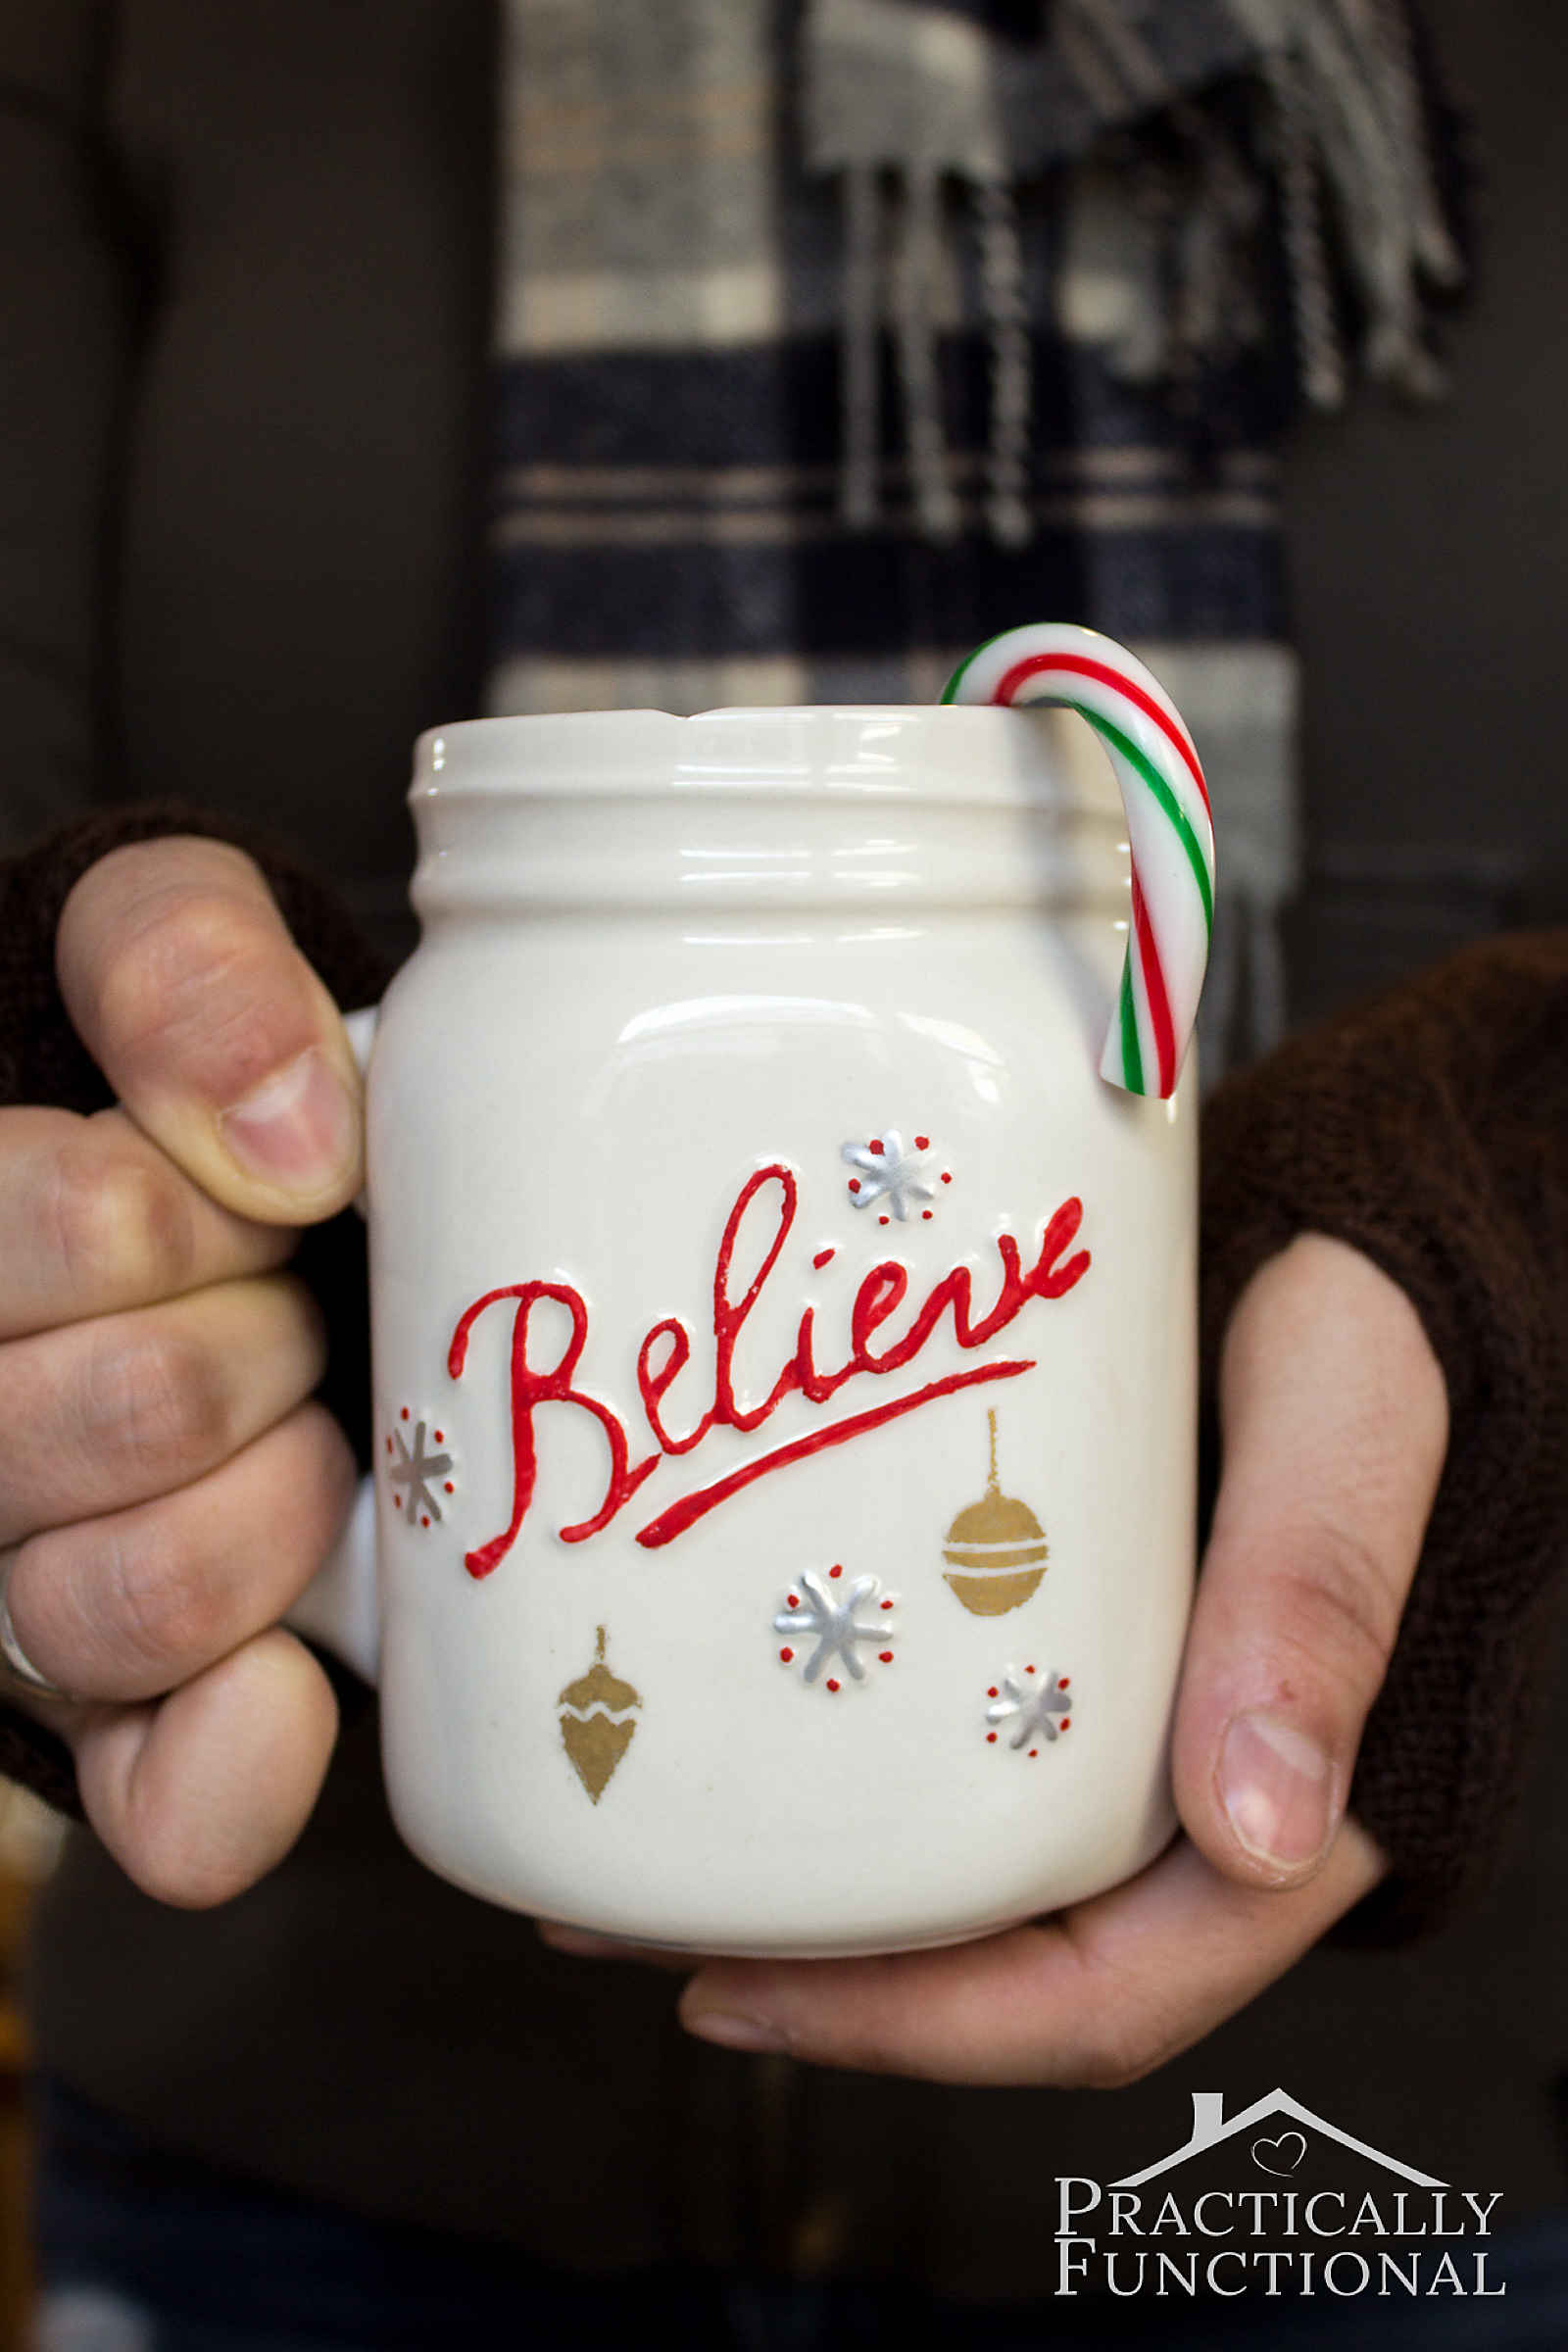 Make a cute DIY painted mug for the holidays with paint pens and adhesive stencils! Great neighbor gifts!